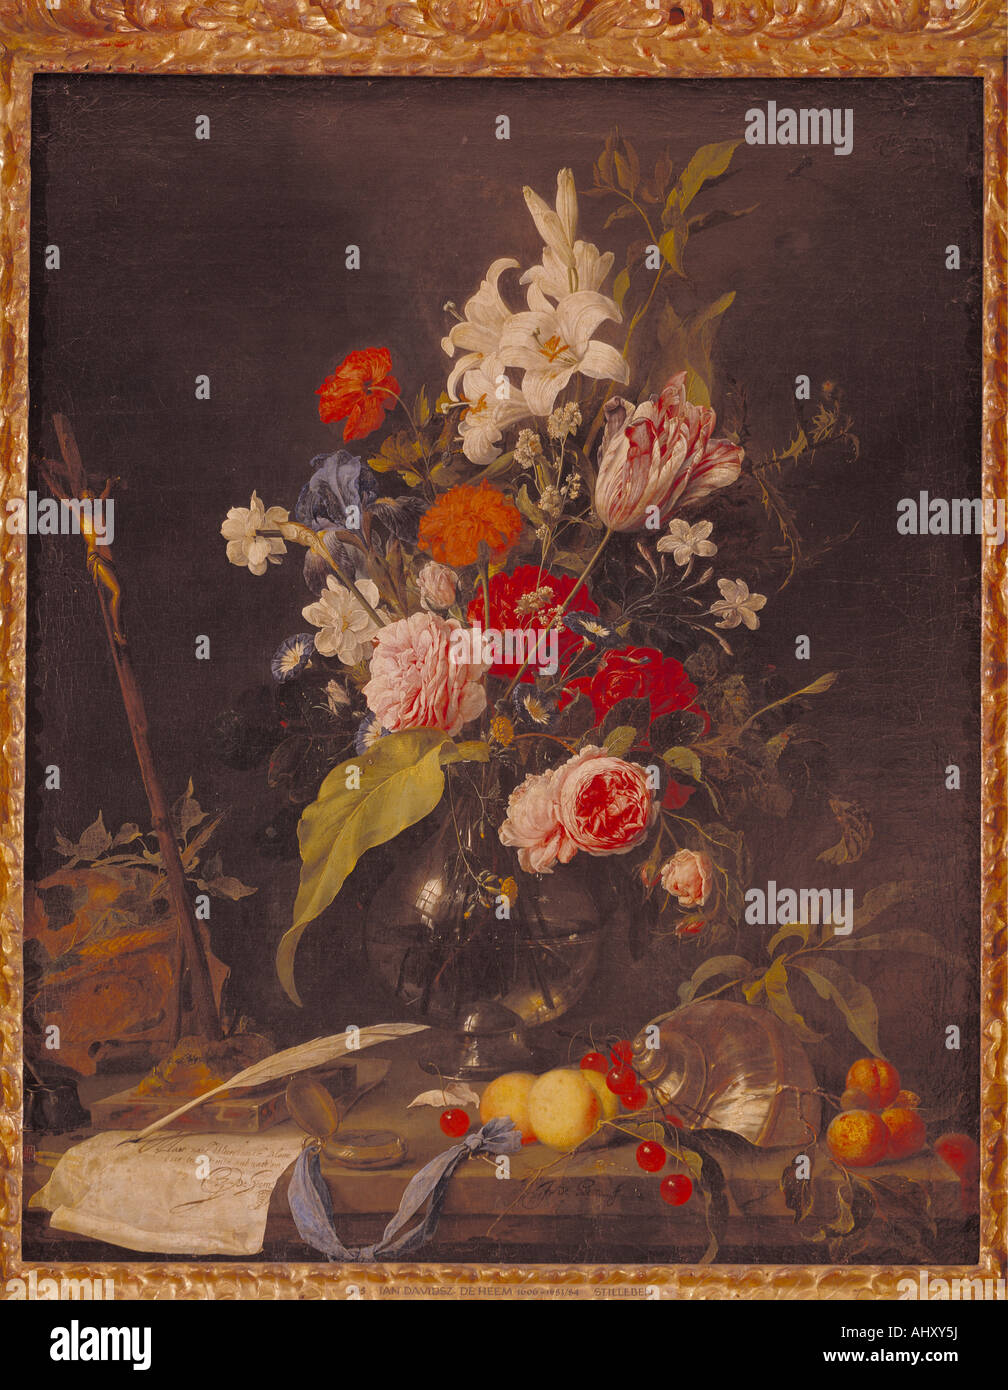 """fine arts, Heem, Jan Davidsz de, (1606 - 1684), painting, ""flower still life with crucifix and skull"", circa 1630, Stock Photo"